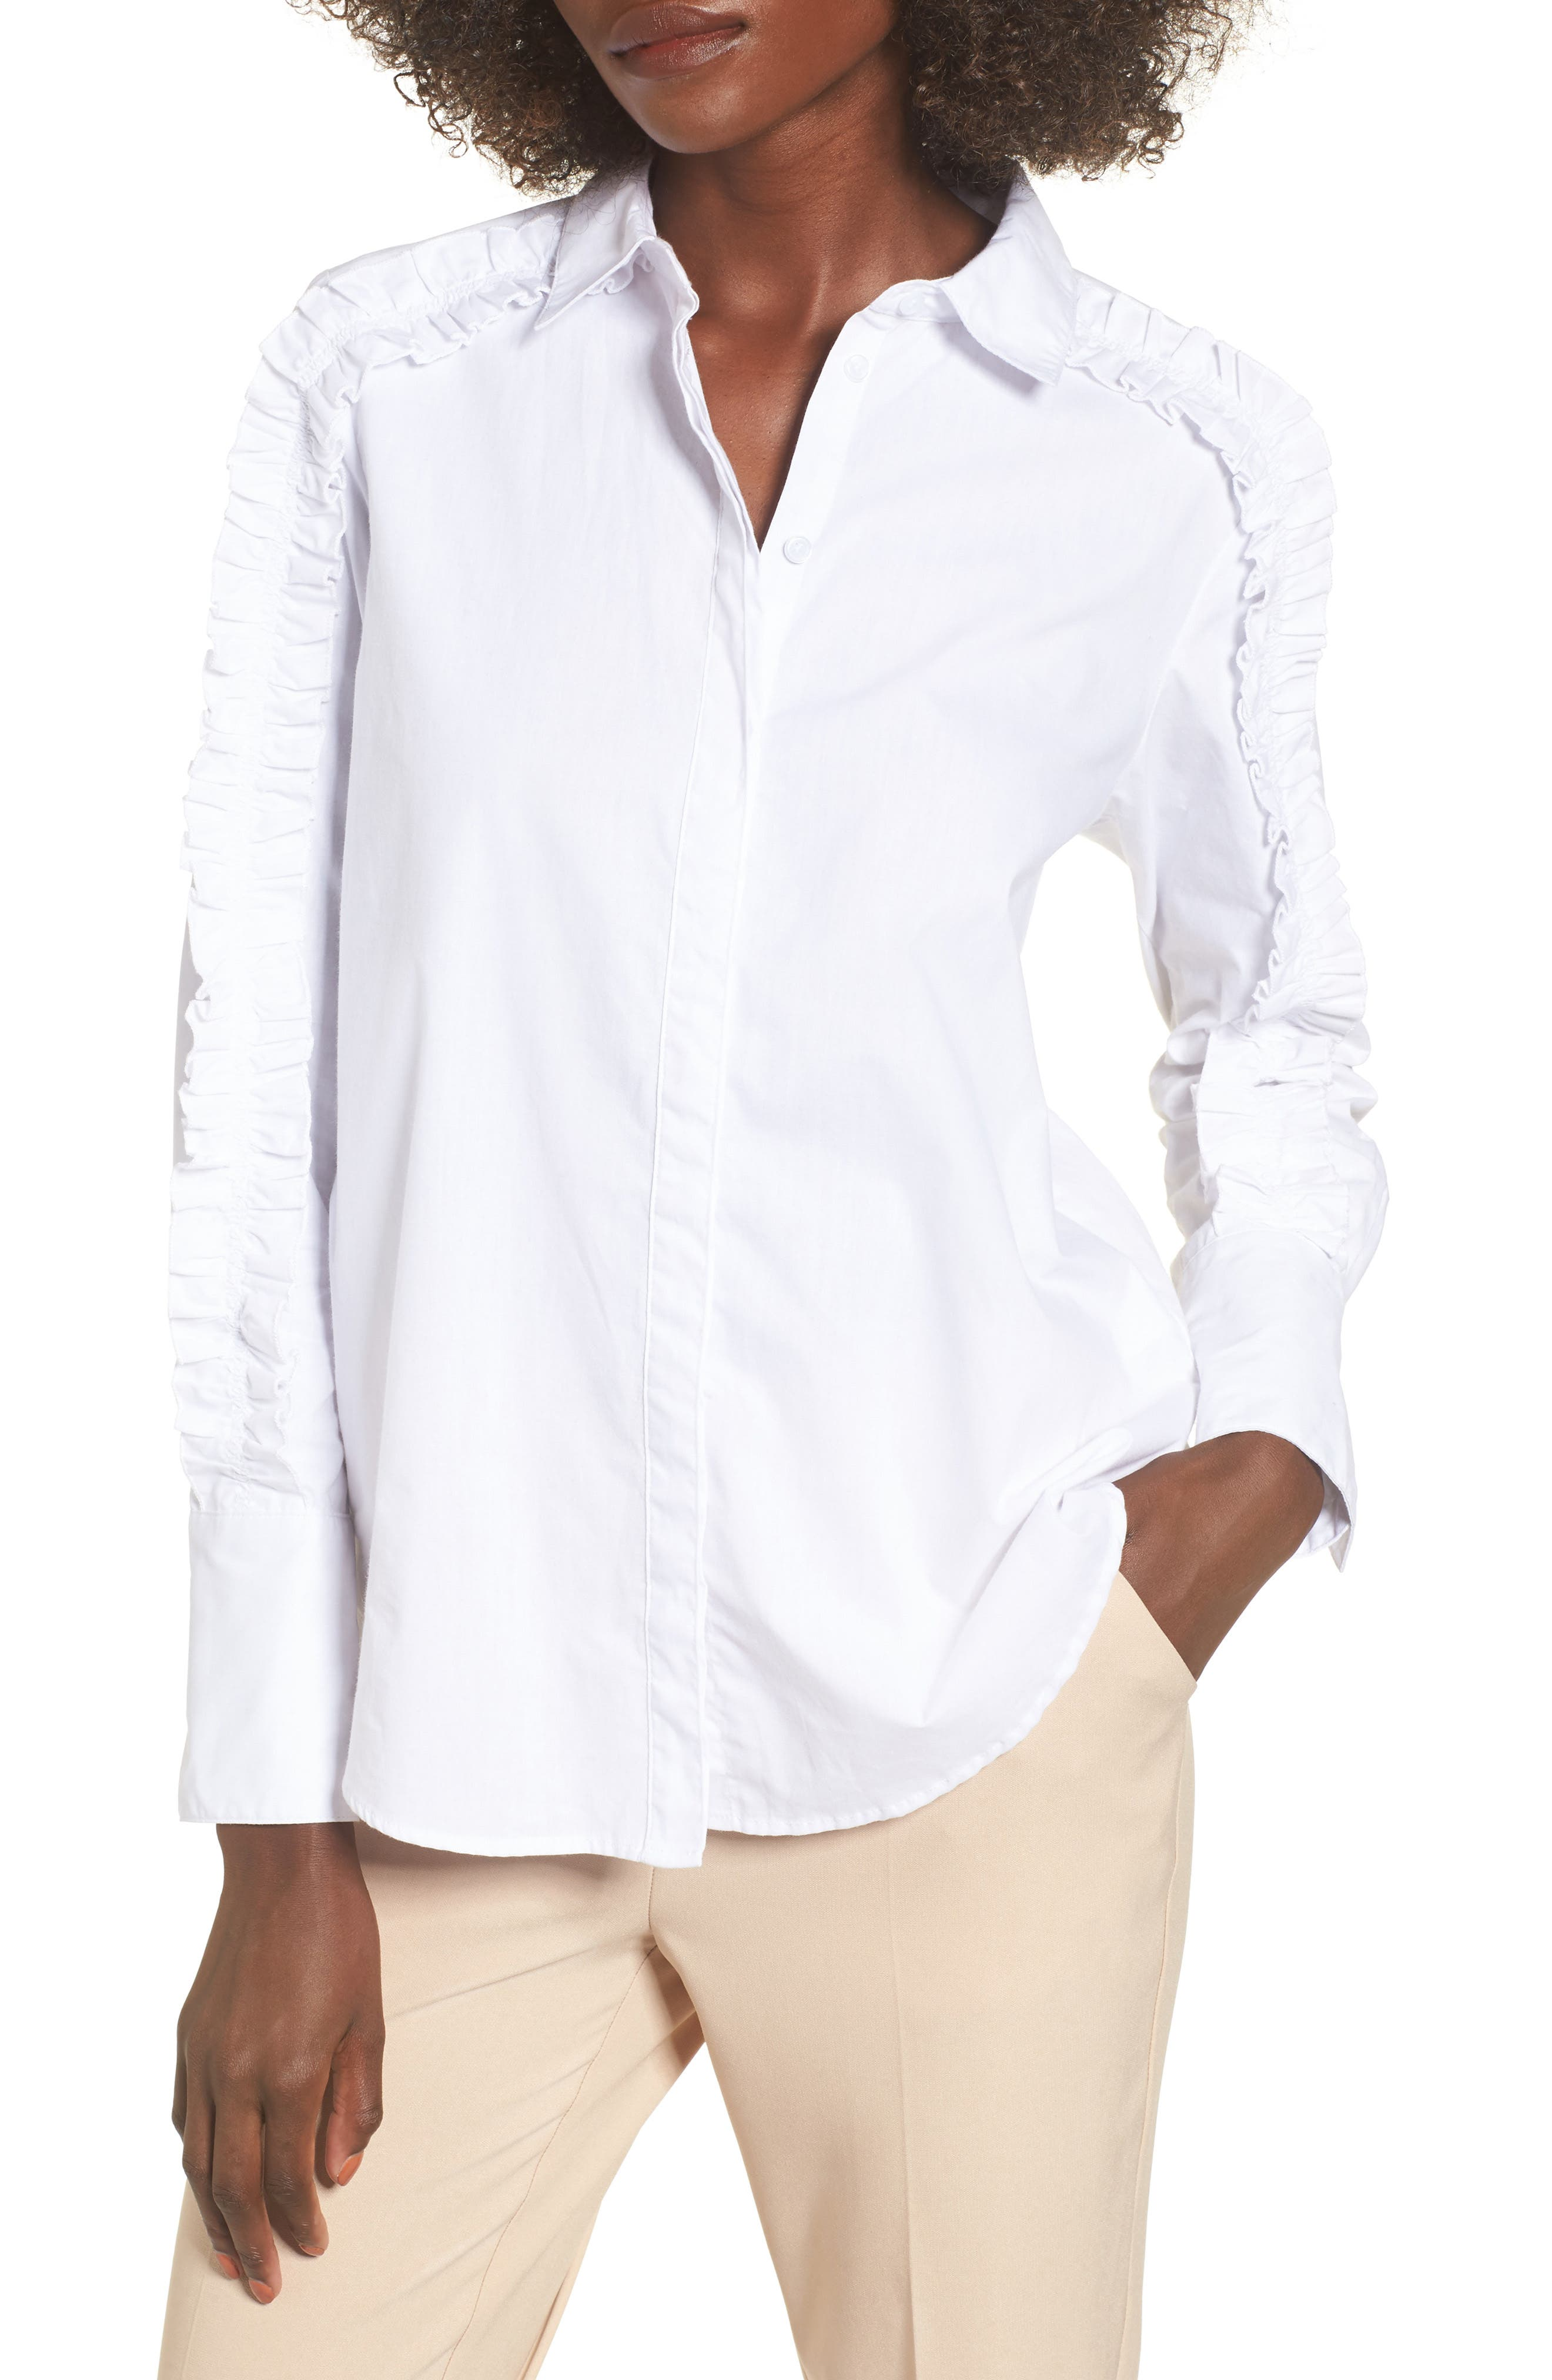 Main Image - The Fifth Label Closer Ruffle Sleeve Button Down Shirt